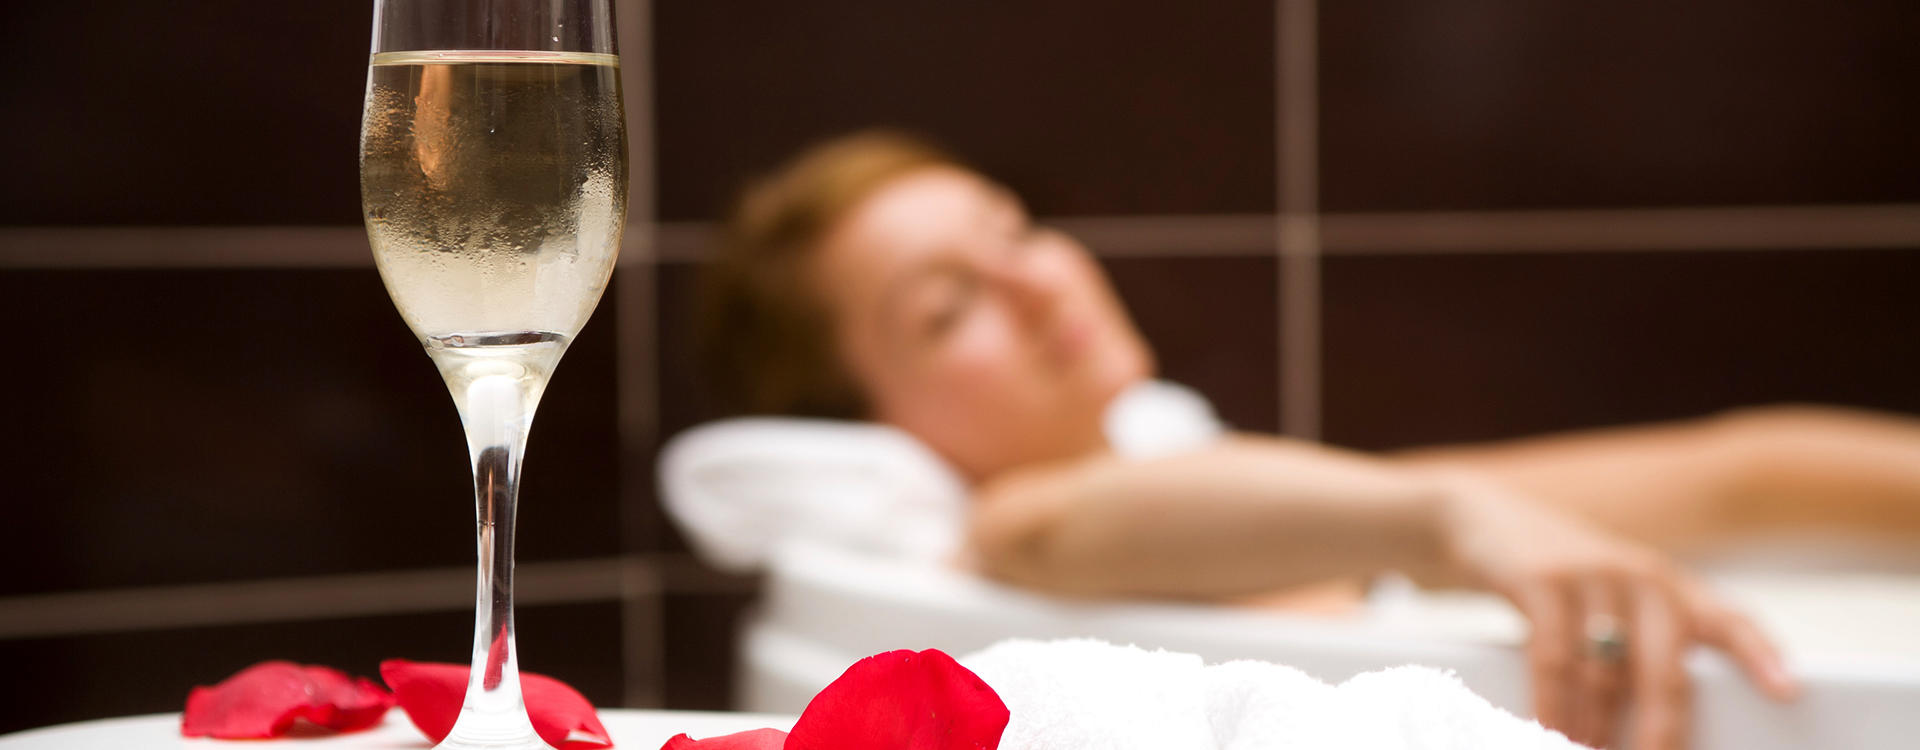 EL-Manor_Bubble-Bath-With-Sparkling-Wine